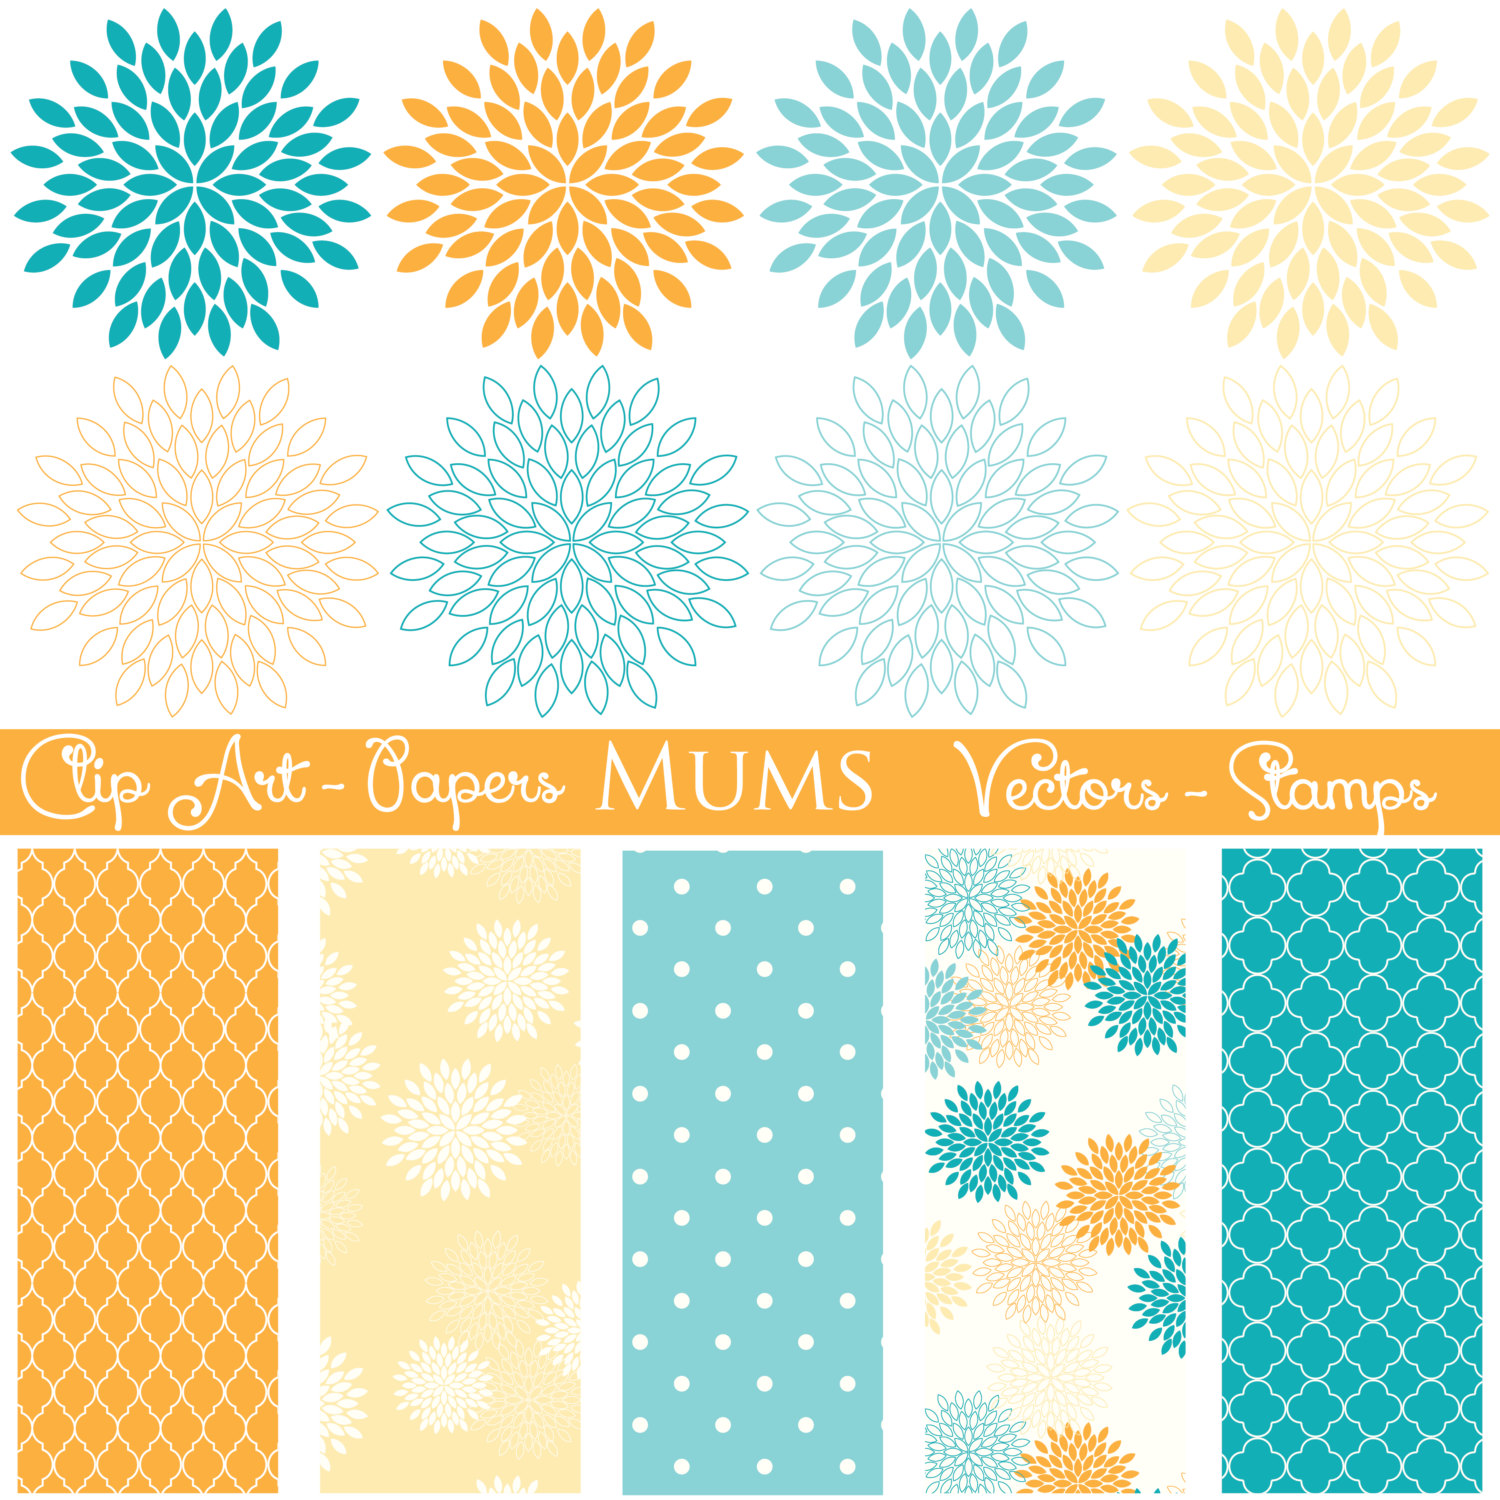 Yellow Flower clipart turquoise flower By Art Zone thePENandBRUSH Mums